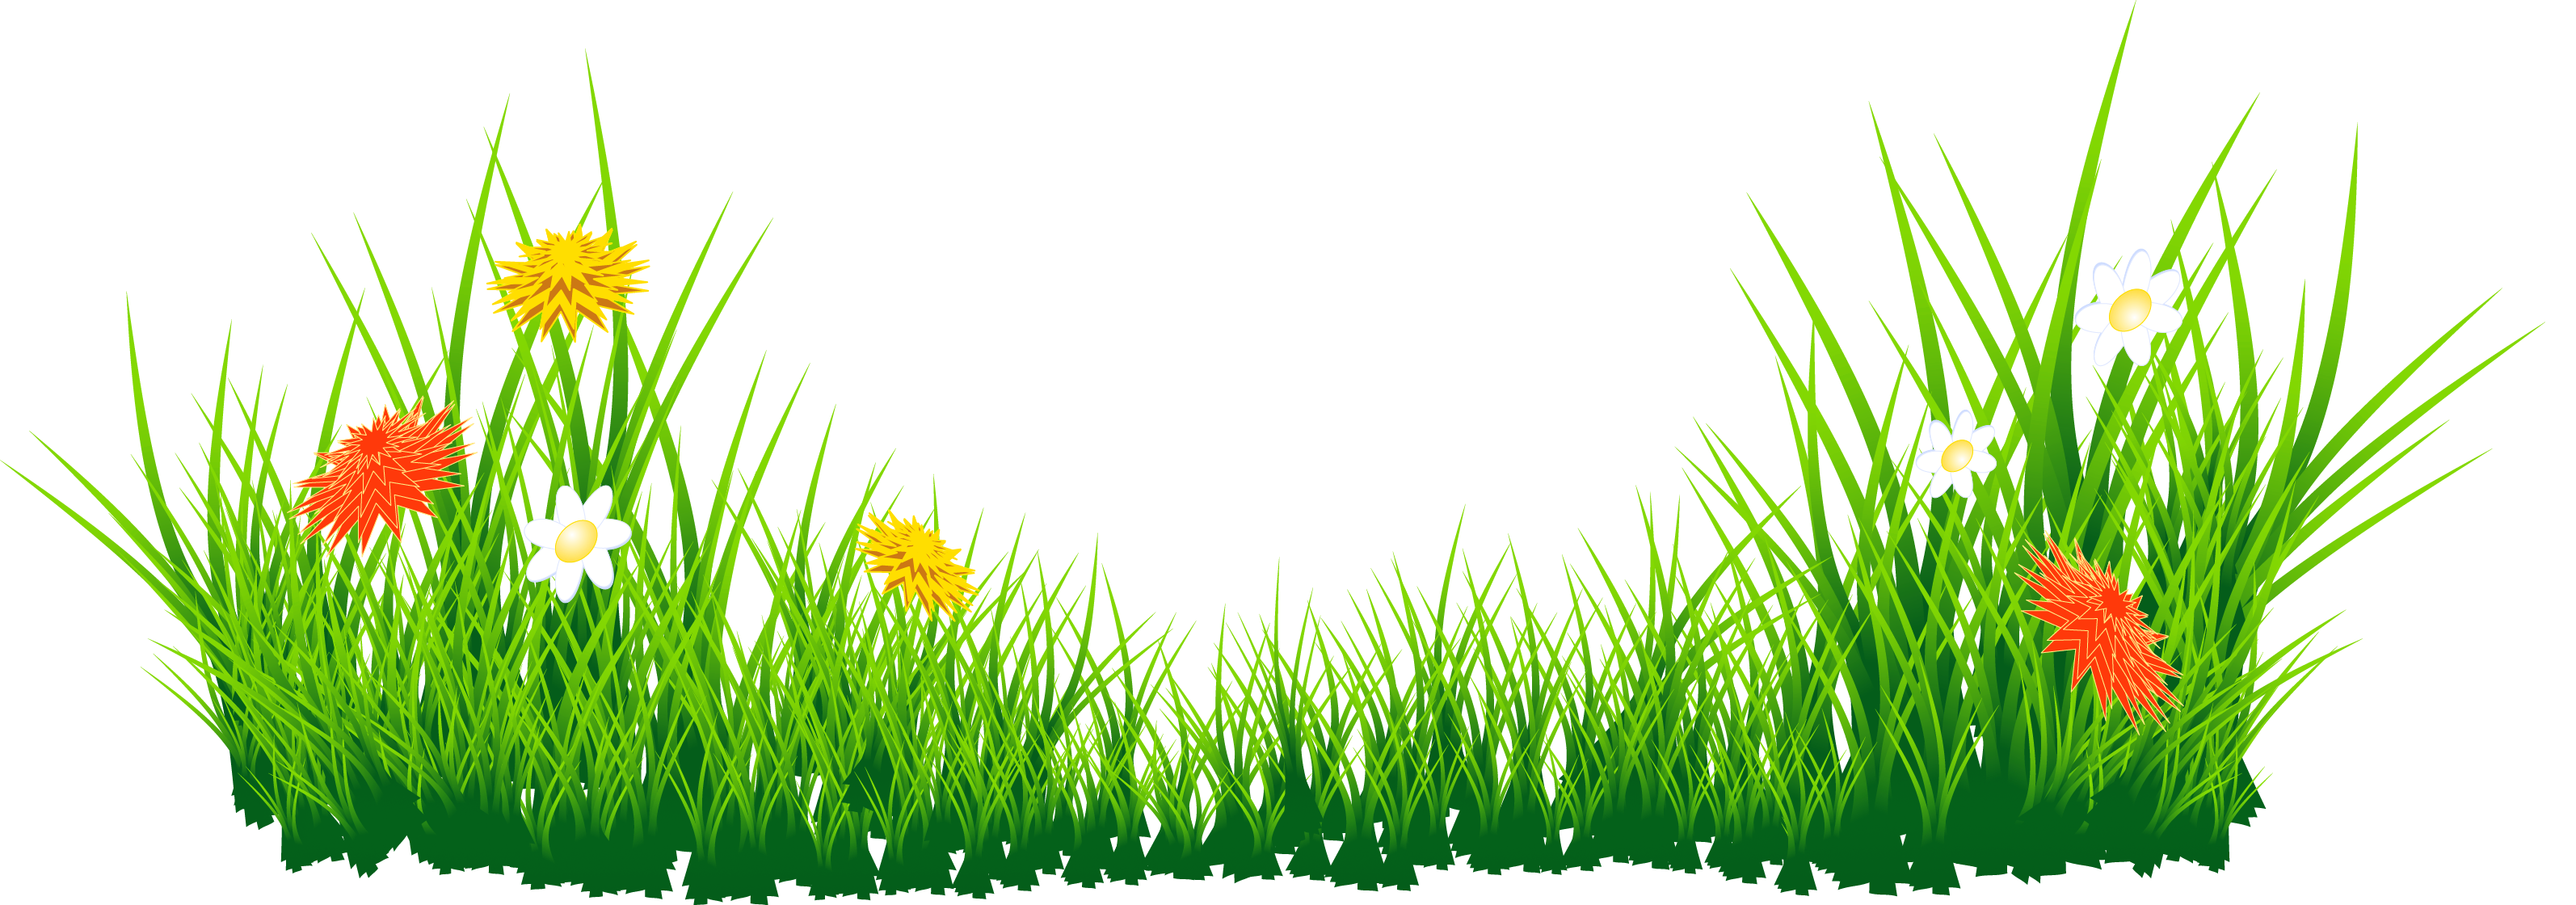 Grass clipart black and white free images 2